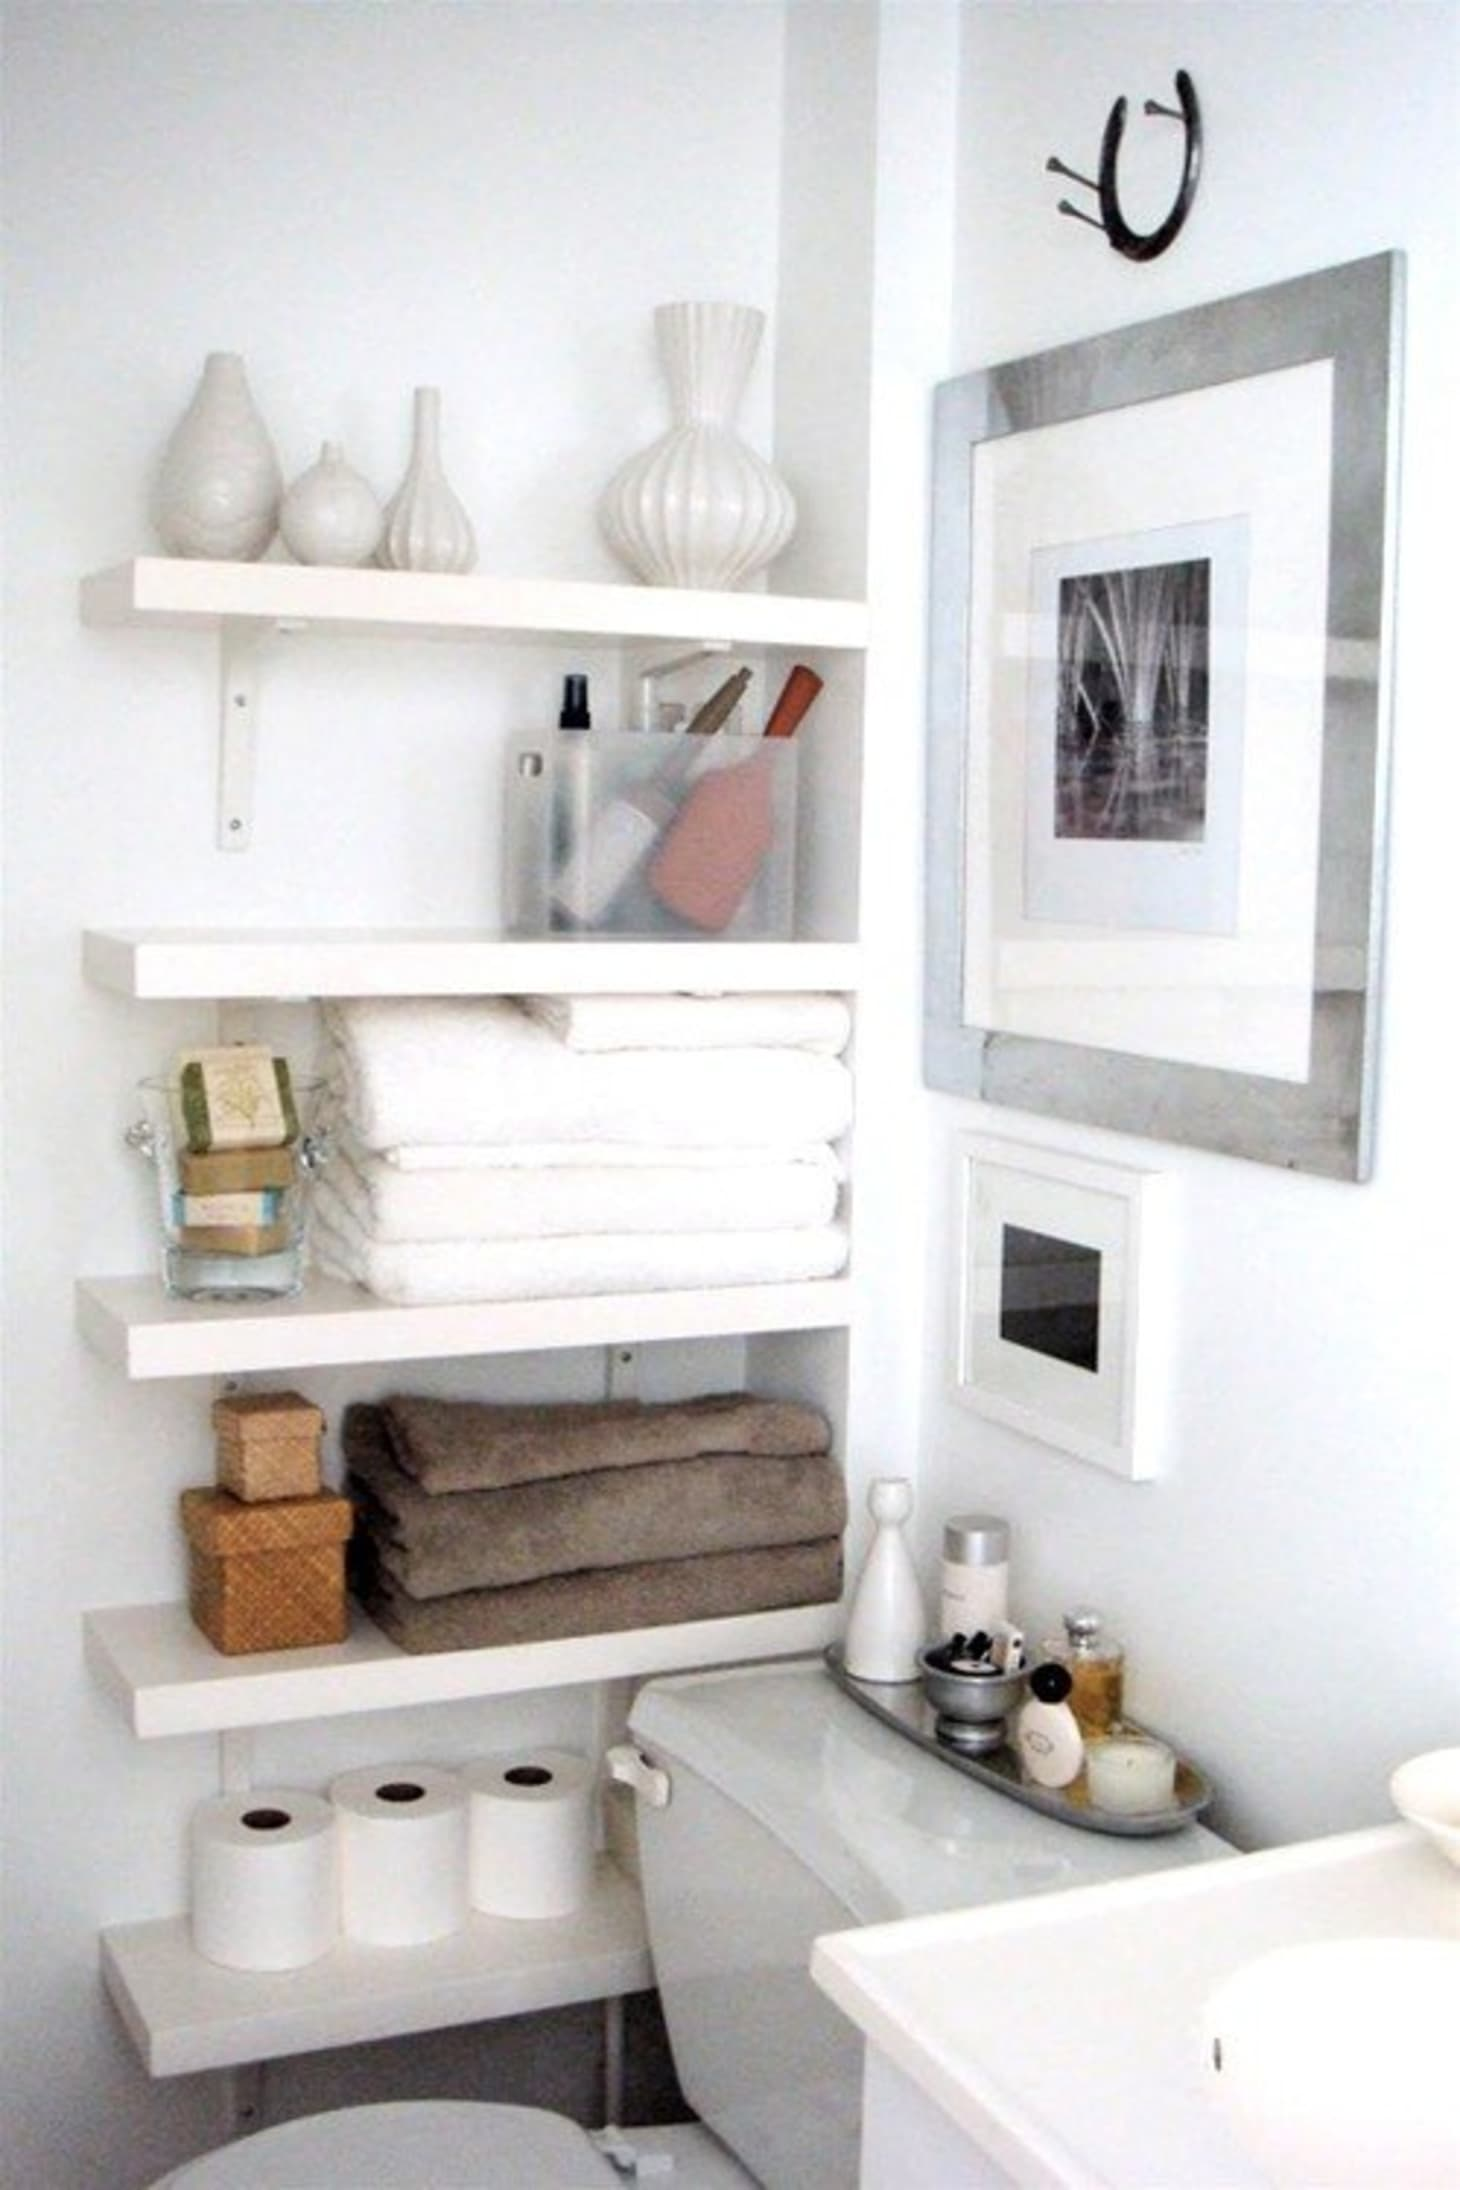 7 Small Bathroom Remodel Ideas - Renovation Pictures of ... on Small Apartment Bathroom Storage Ideas  id=17118